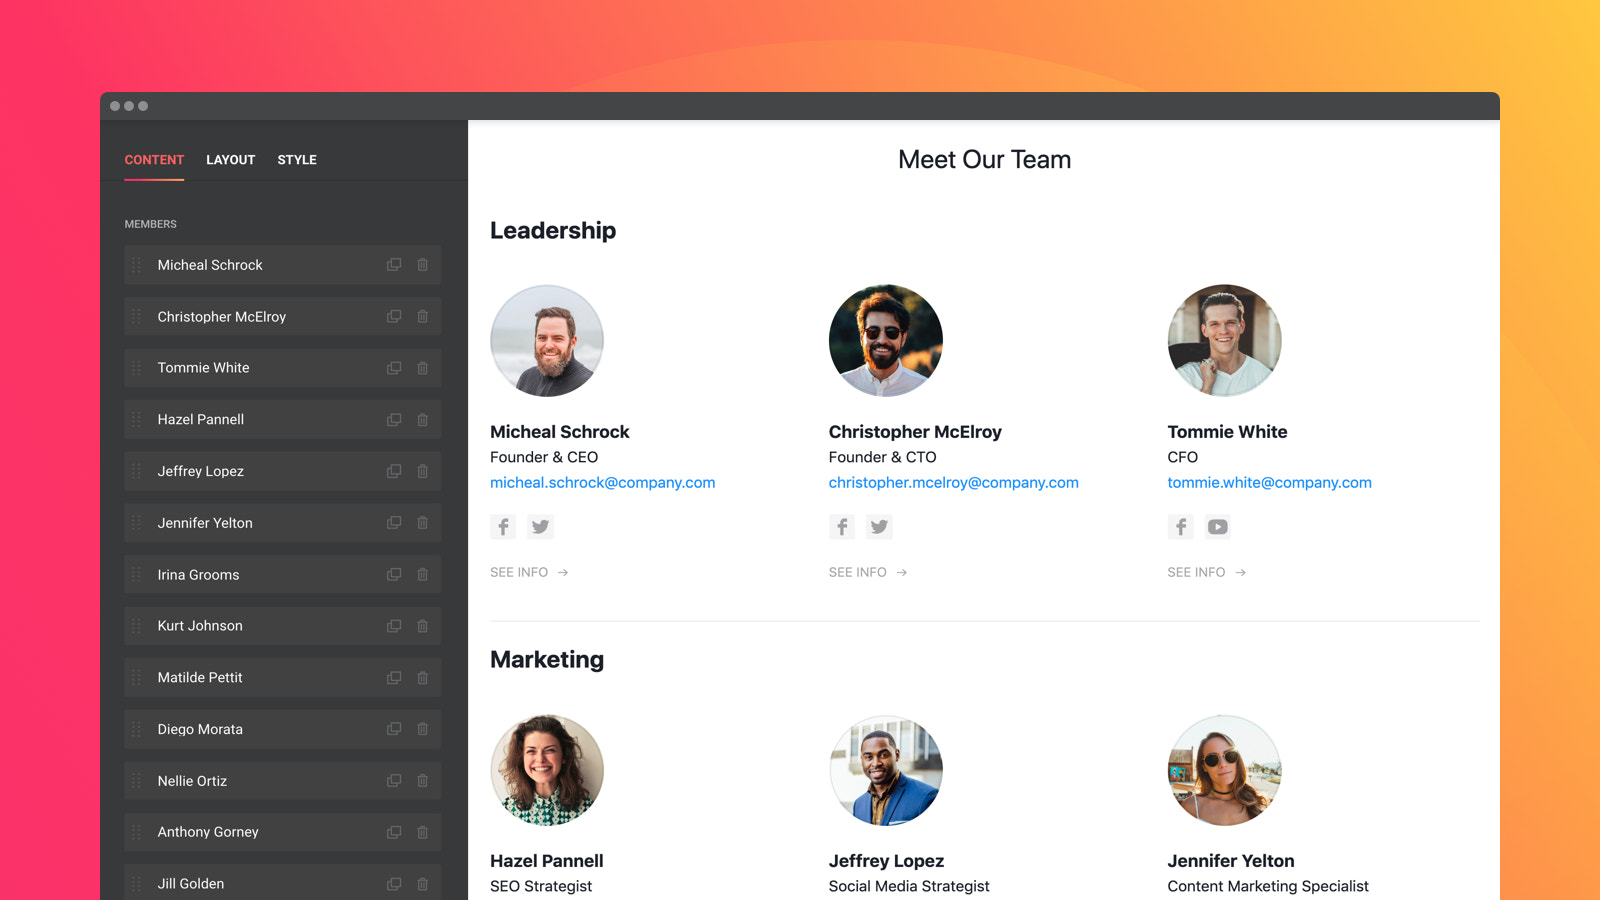 Groups help make search for the right person easier